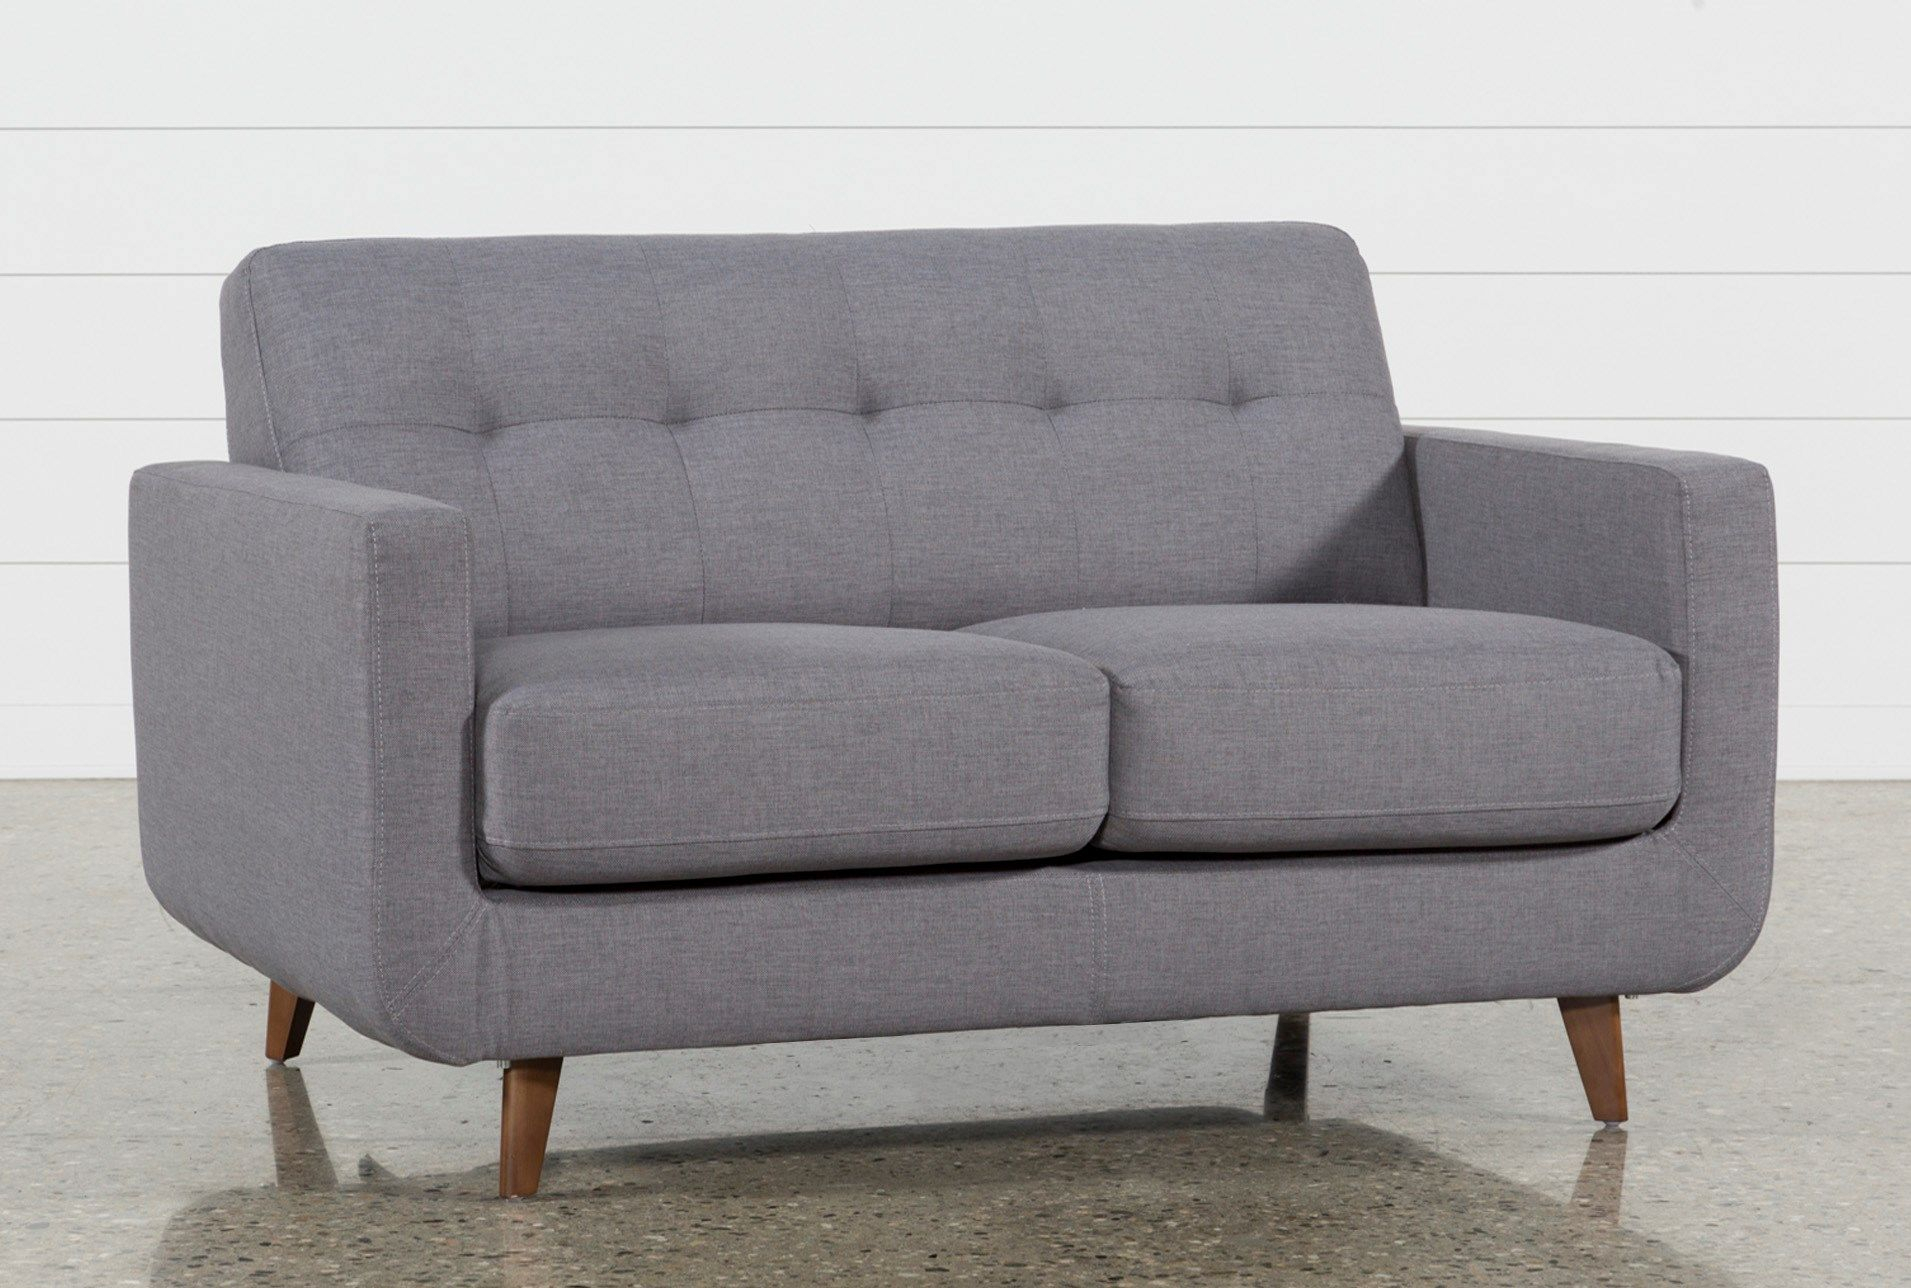 Allie Dark Grey Loveseat | Dark Grey, Mid Century Modern And Living Pertaining To Allie Jade Sofa Chairs (View 5 of 25)